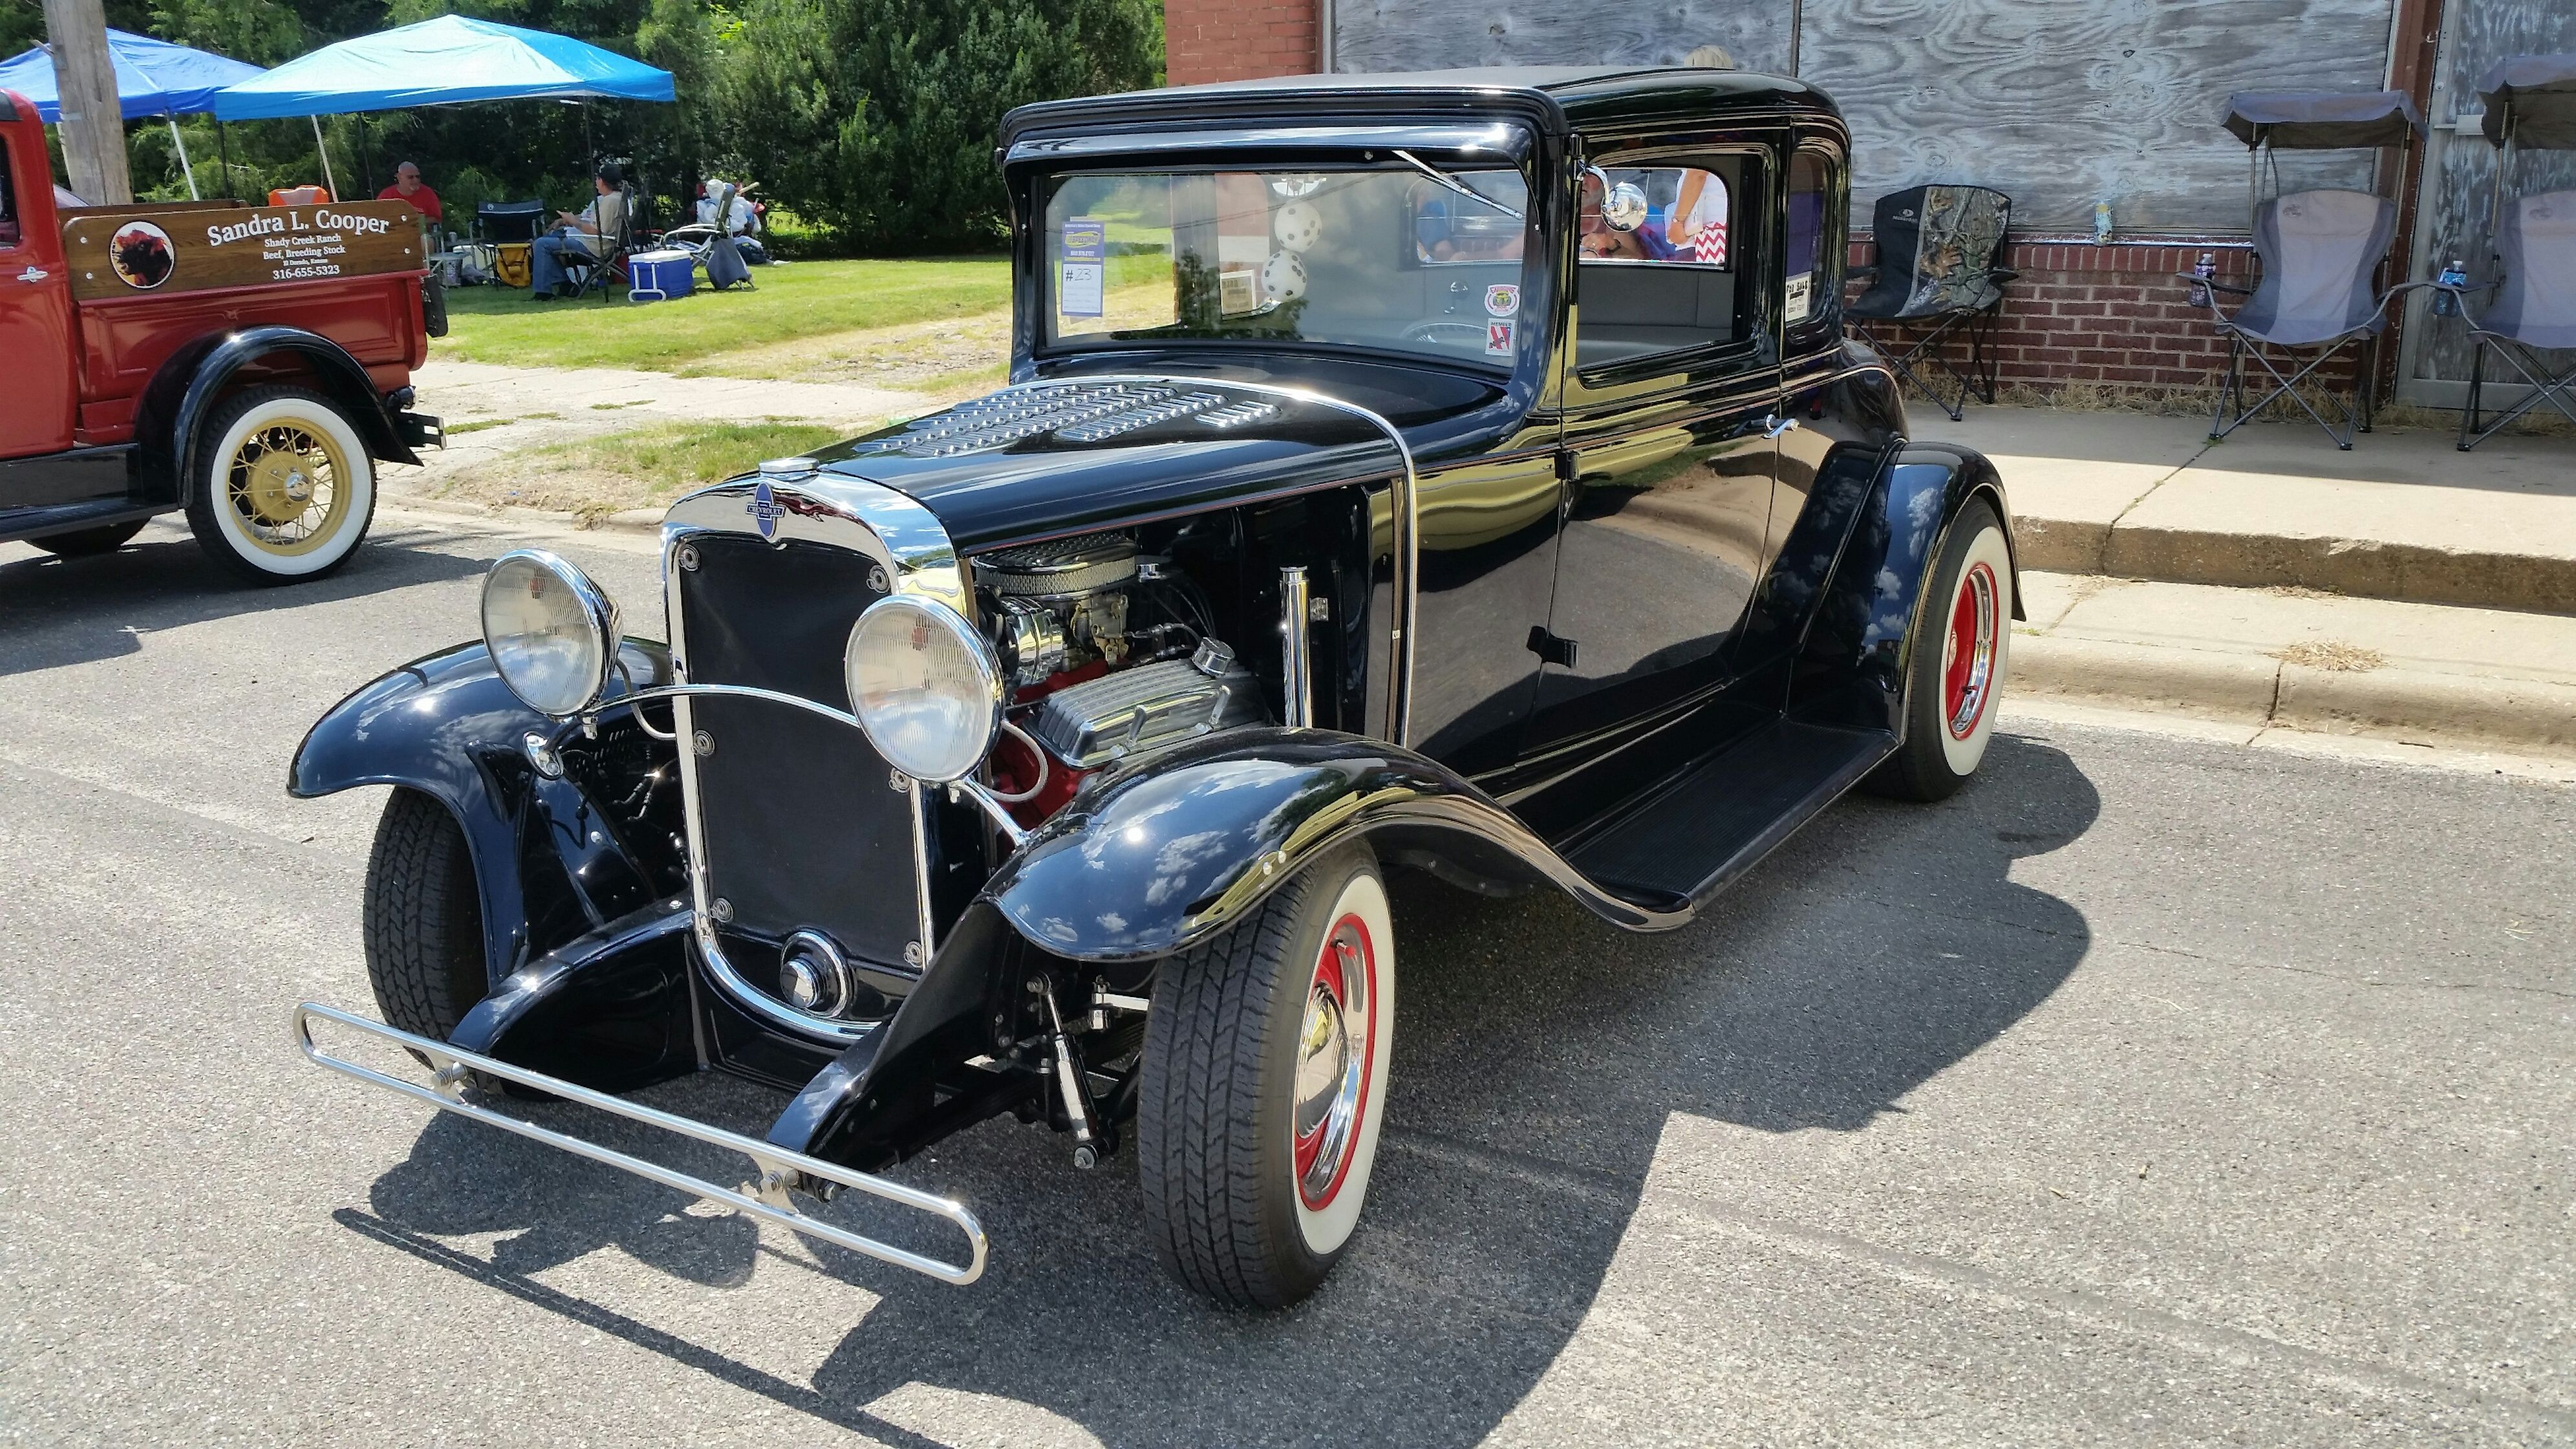 Motor\'n | 1931 Chevrolet Coupe Street Rod for sale at www.motorn.com ...